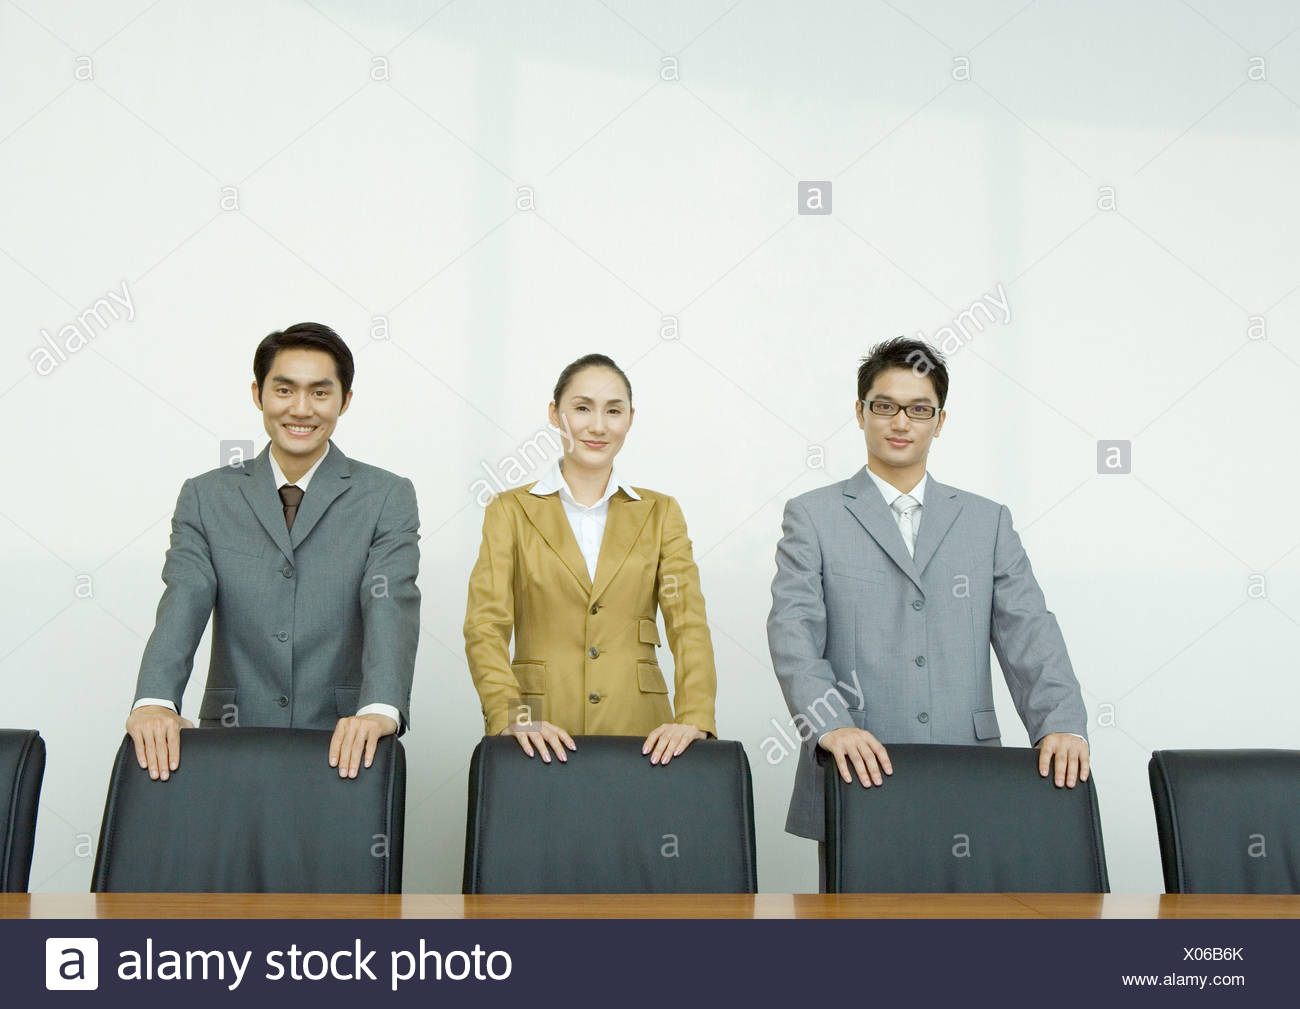 Business executives standing with hands on backs of chairs in conference room - Stock Image